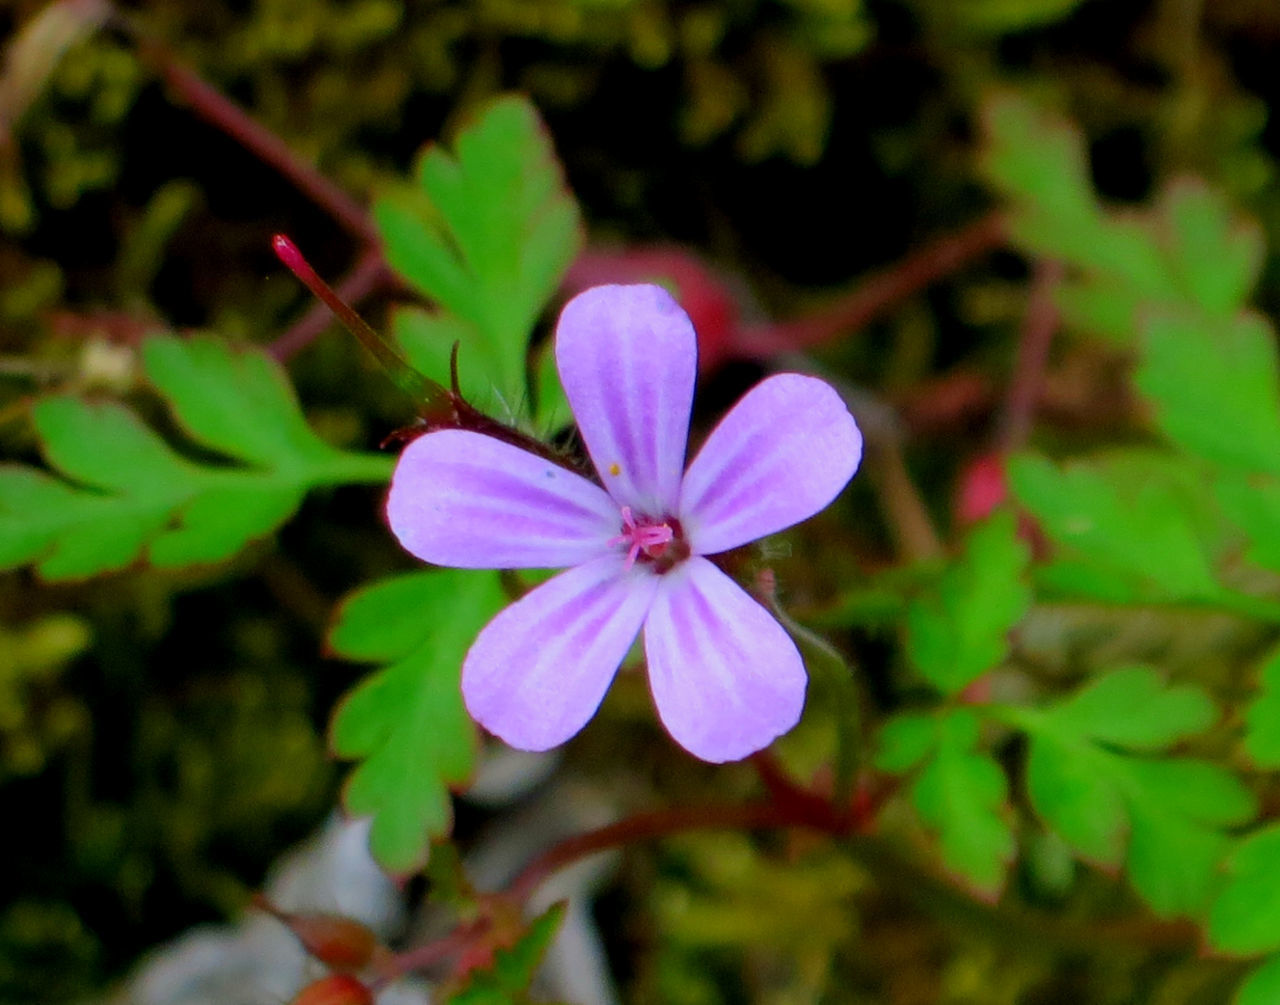 flower, petal, fragility, flower head, nature, growth, beauty in nature, freshness, plant, focus on foreground, no people, day, blooming, close-up, outdoors, leaf, periwinkle